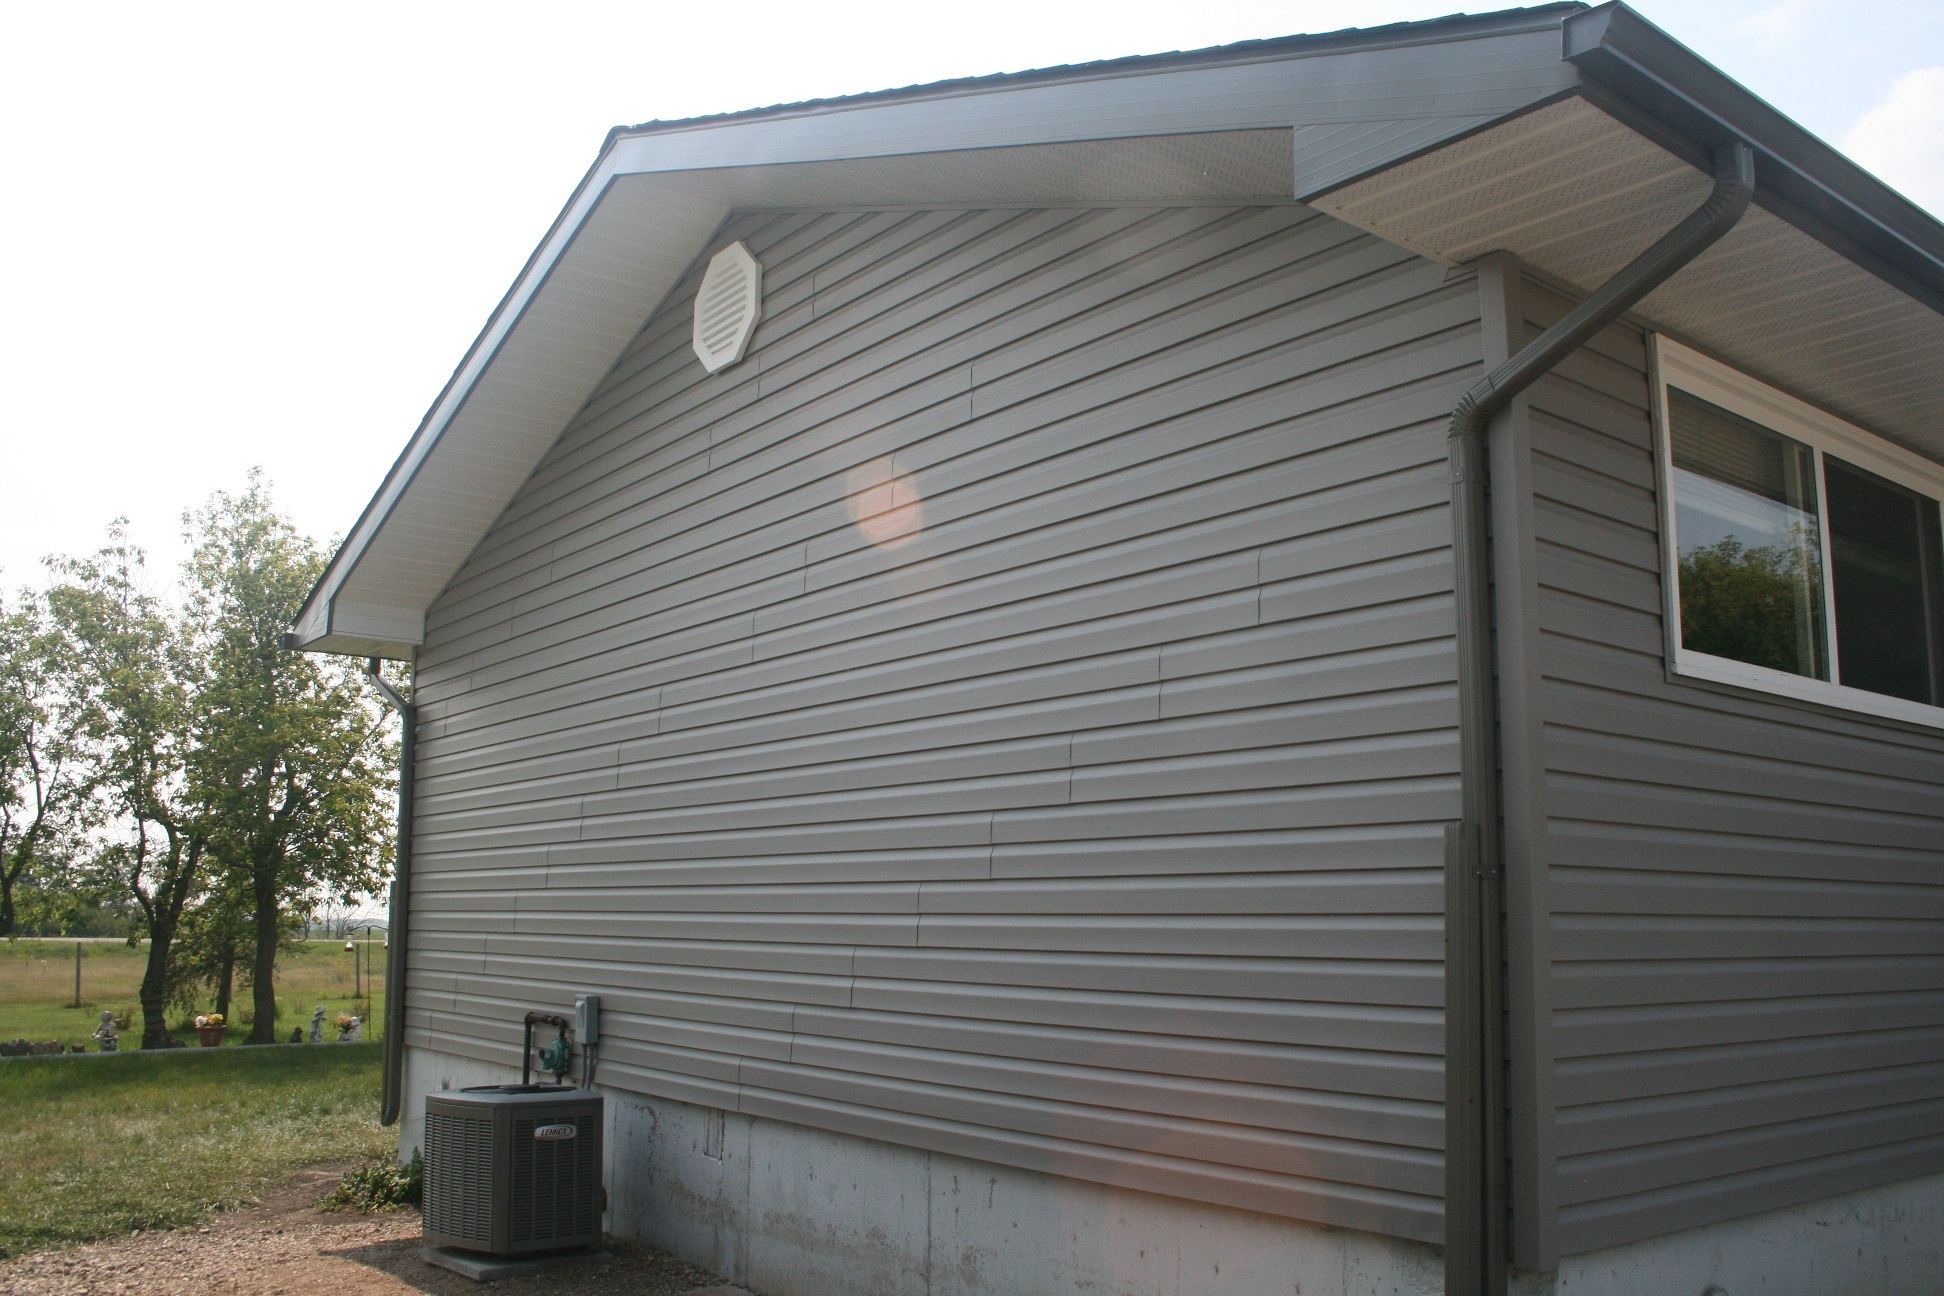 Exterior renovation on a house with hail damage. - Image 13